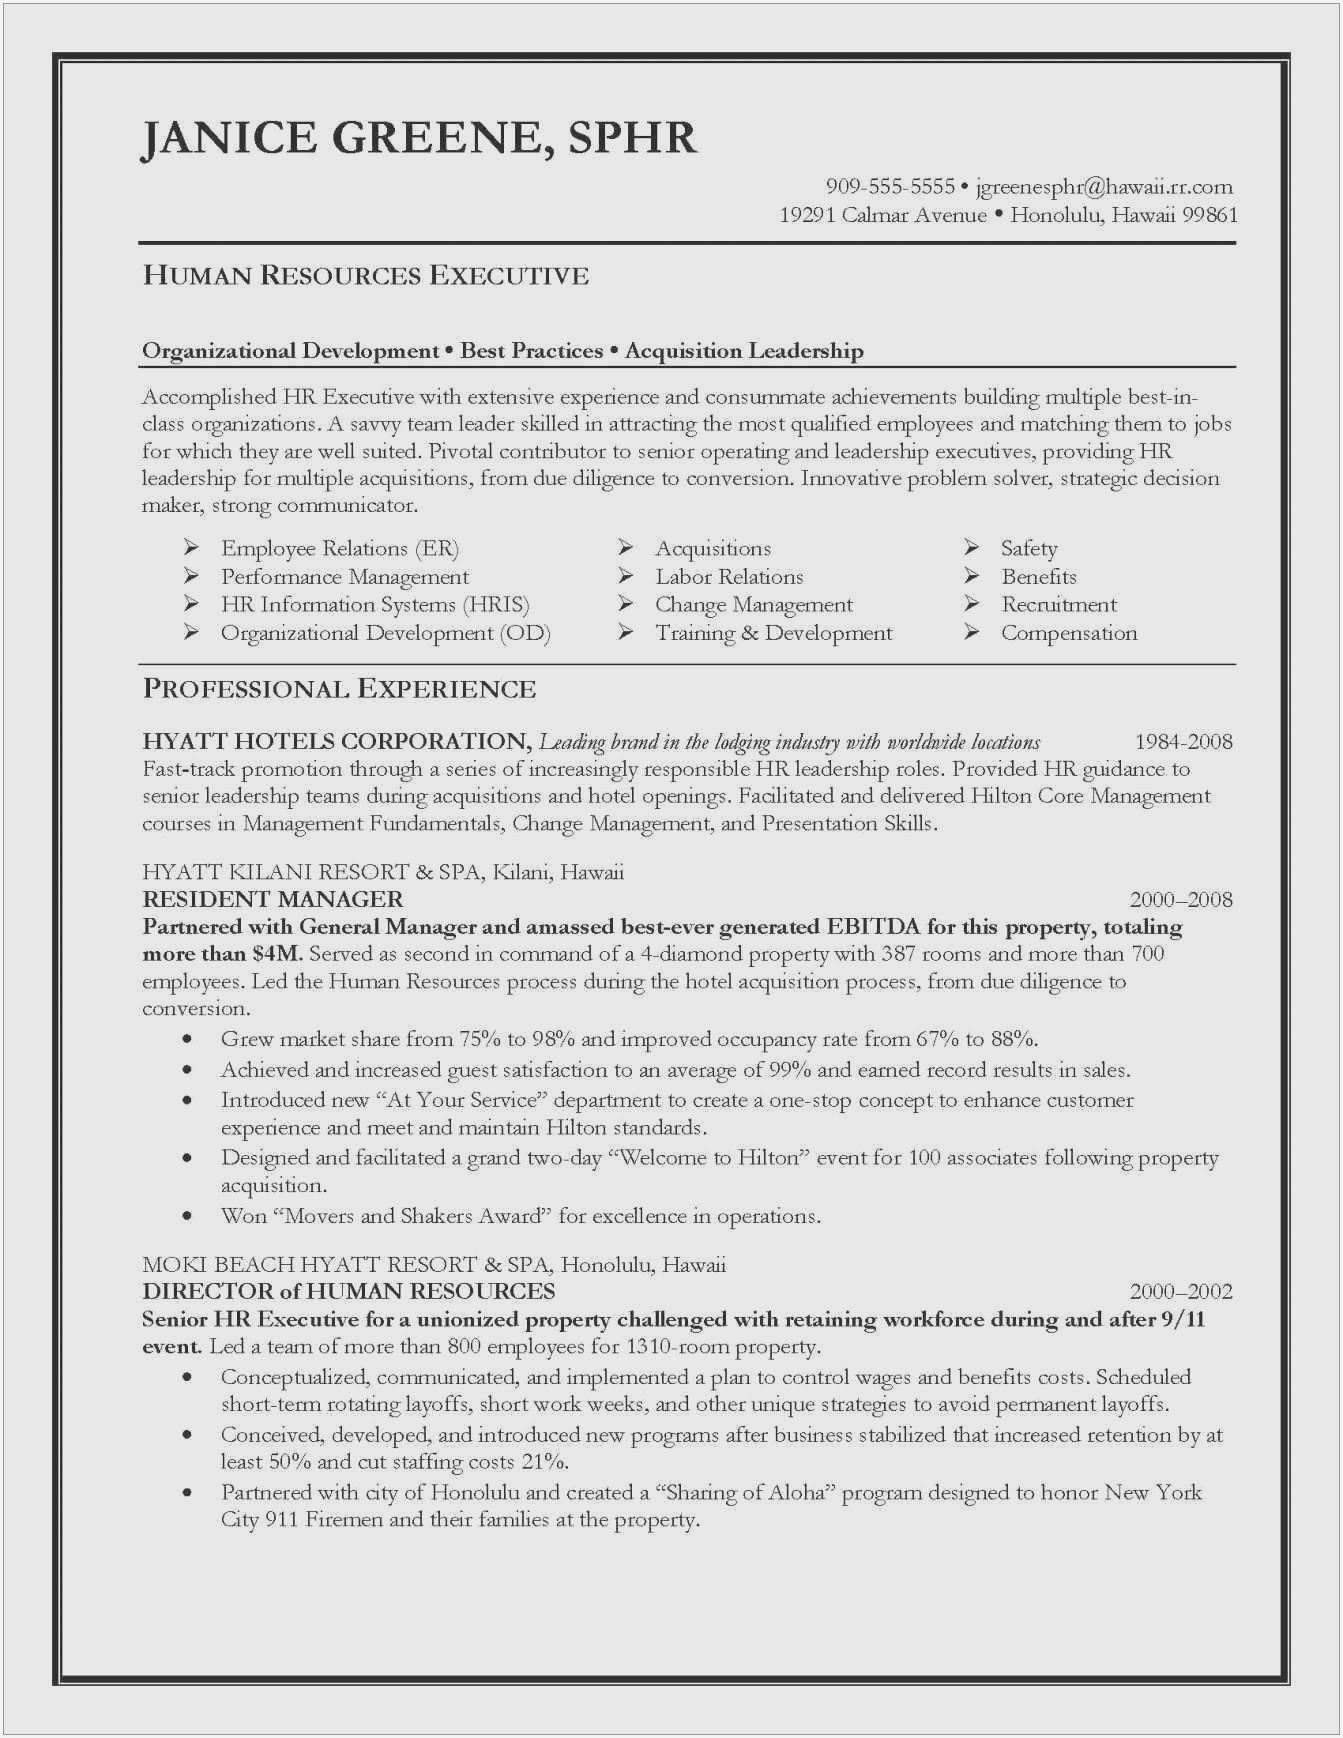 best resume writing services melbourne sample frisco tx work history example transition Resume Best Resume Writing Services Melbourne